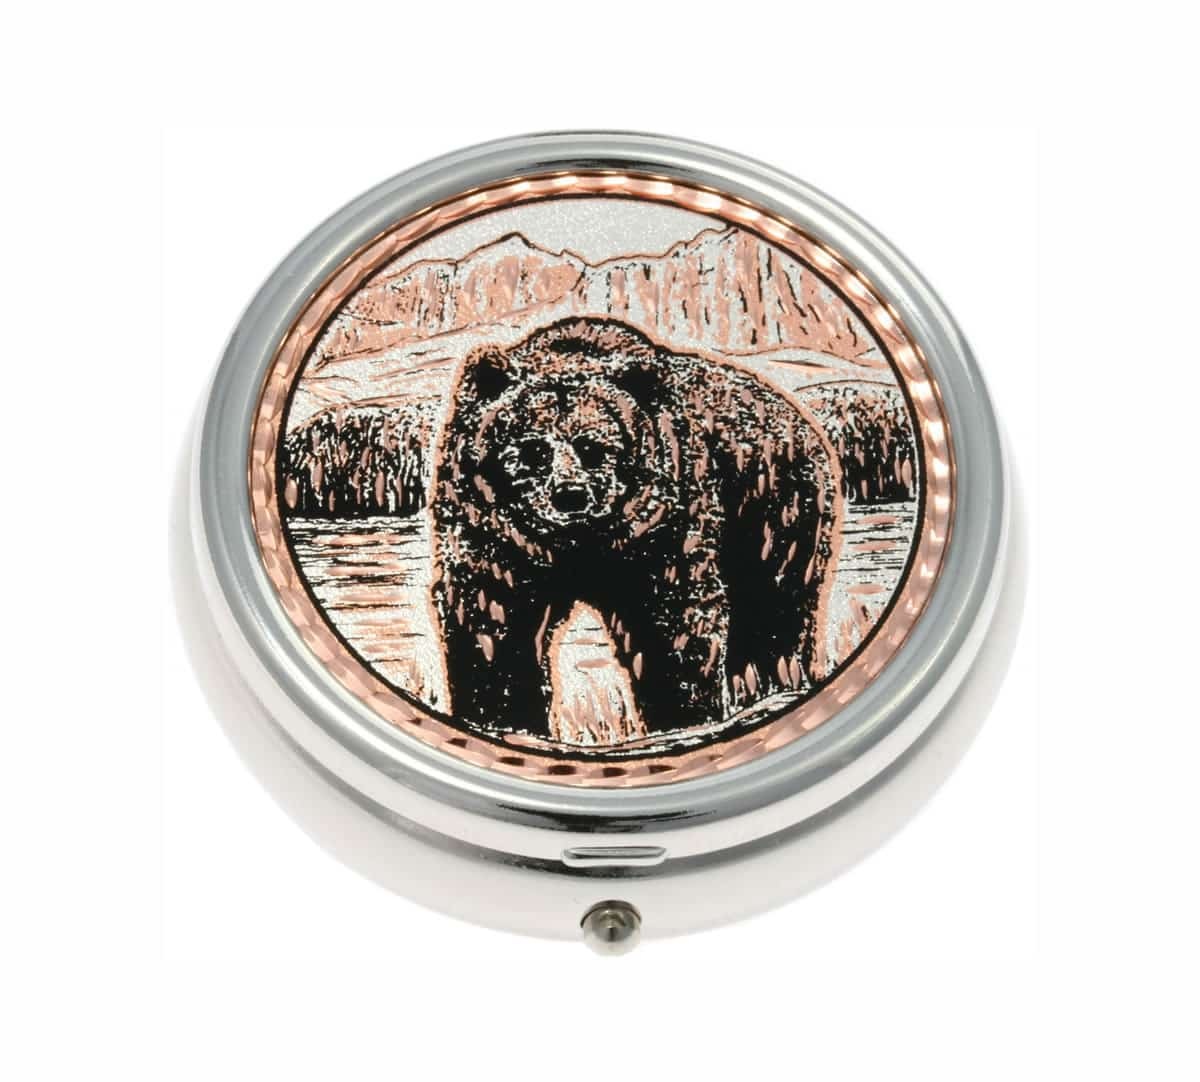 Buy Elegant Grizzly Bear Pill Boxes, Special Handmade Gifts for Women